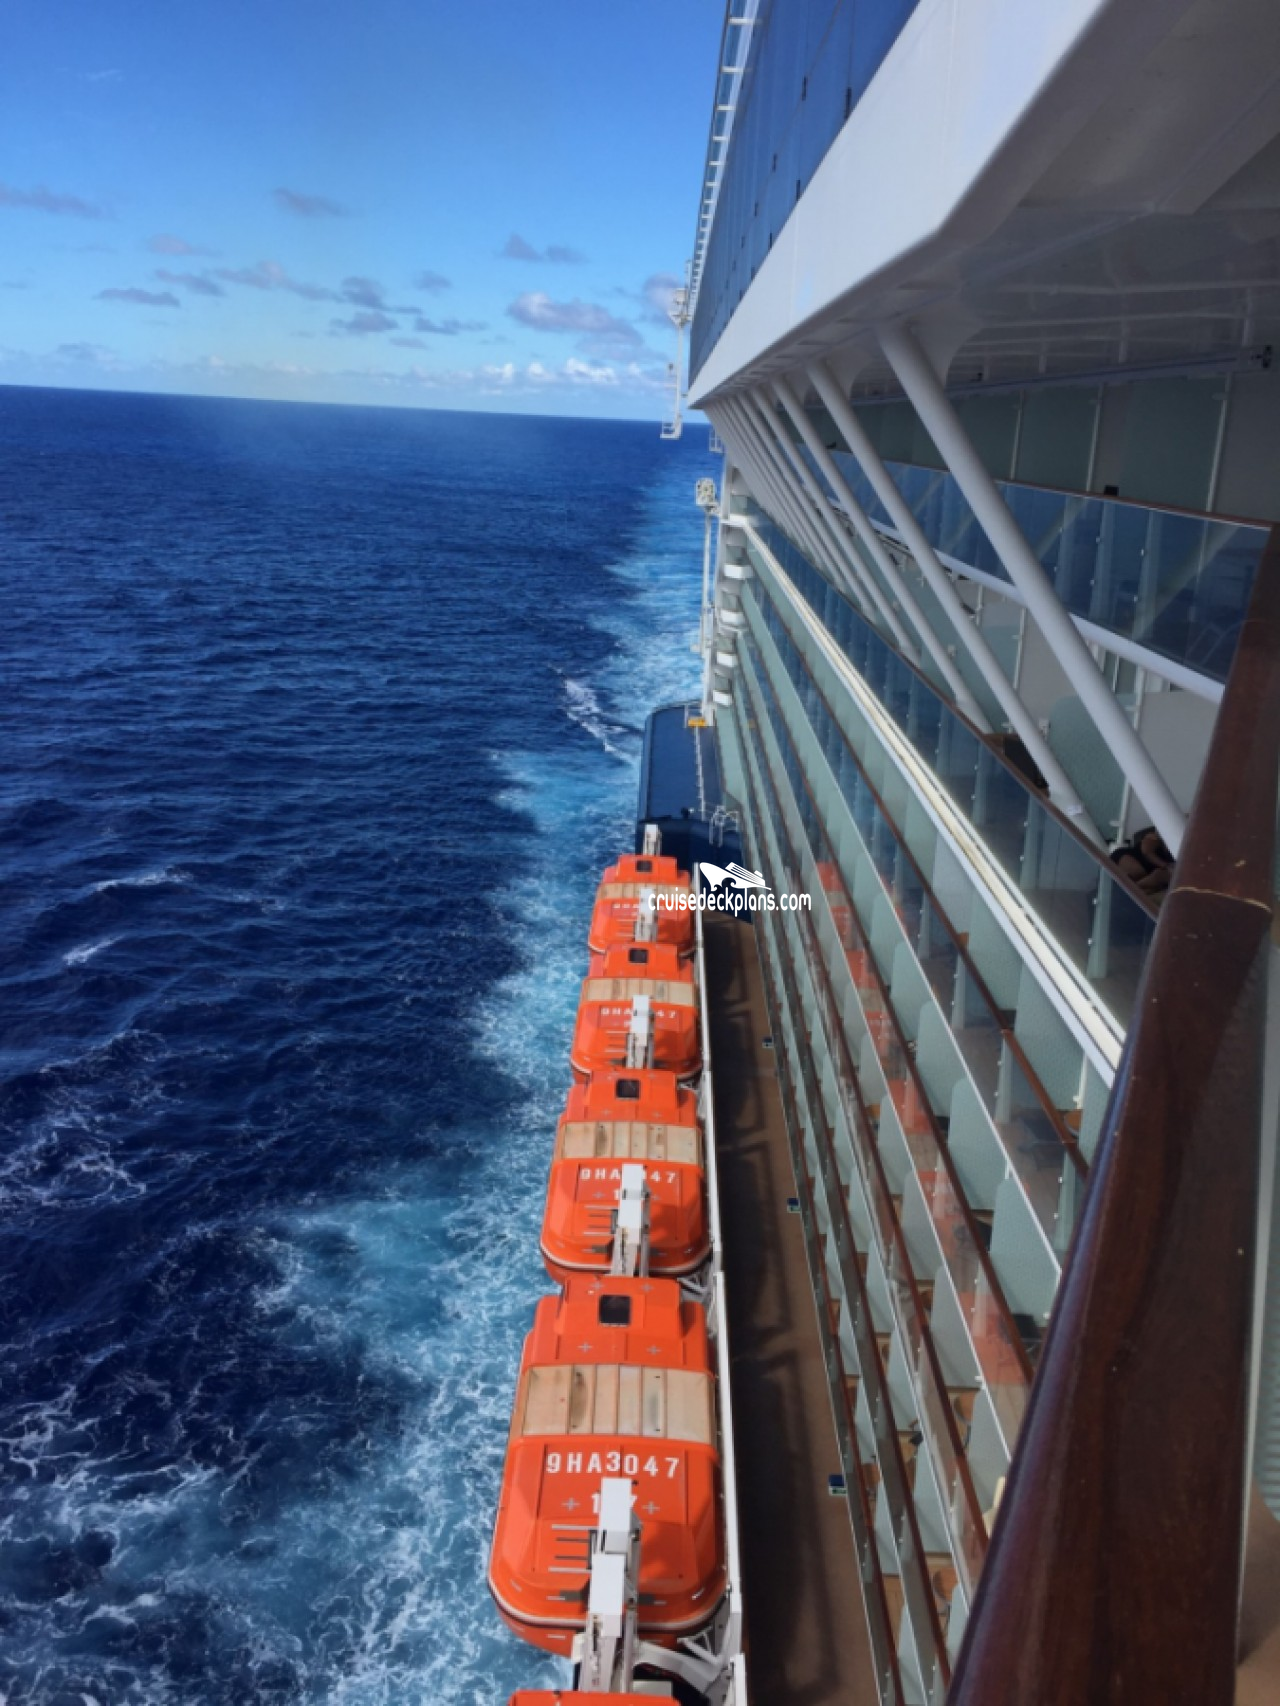 Carnival Dream Deck Plans, Diagrams, Pictures, Video